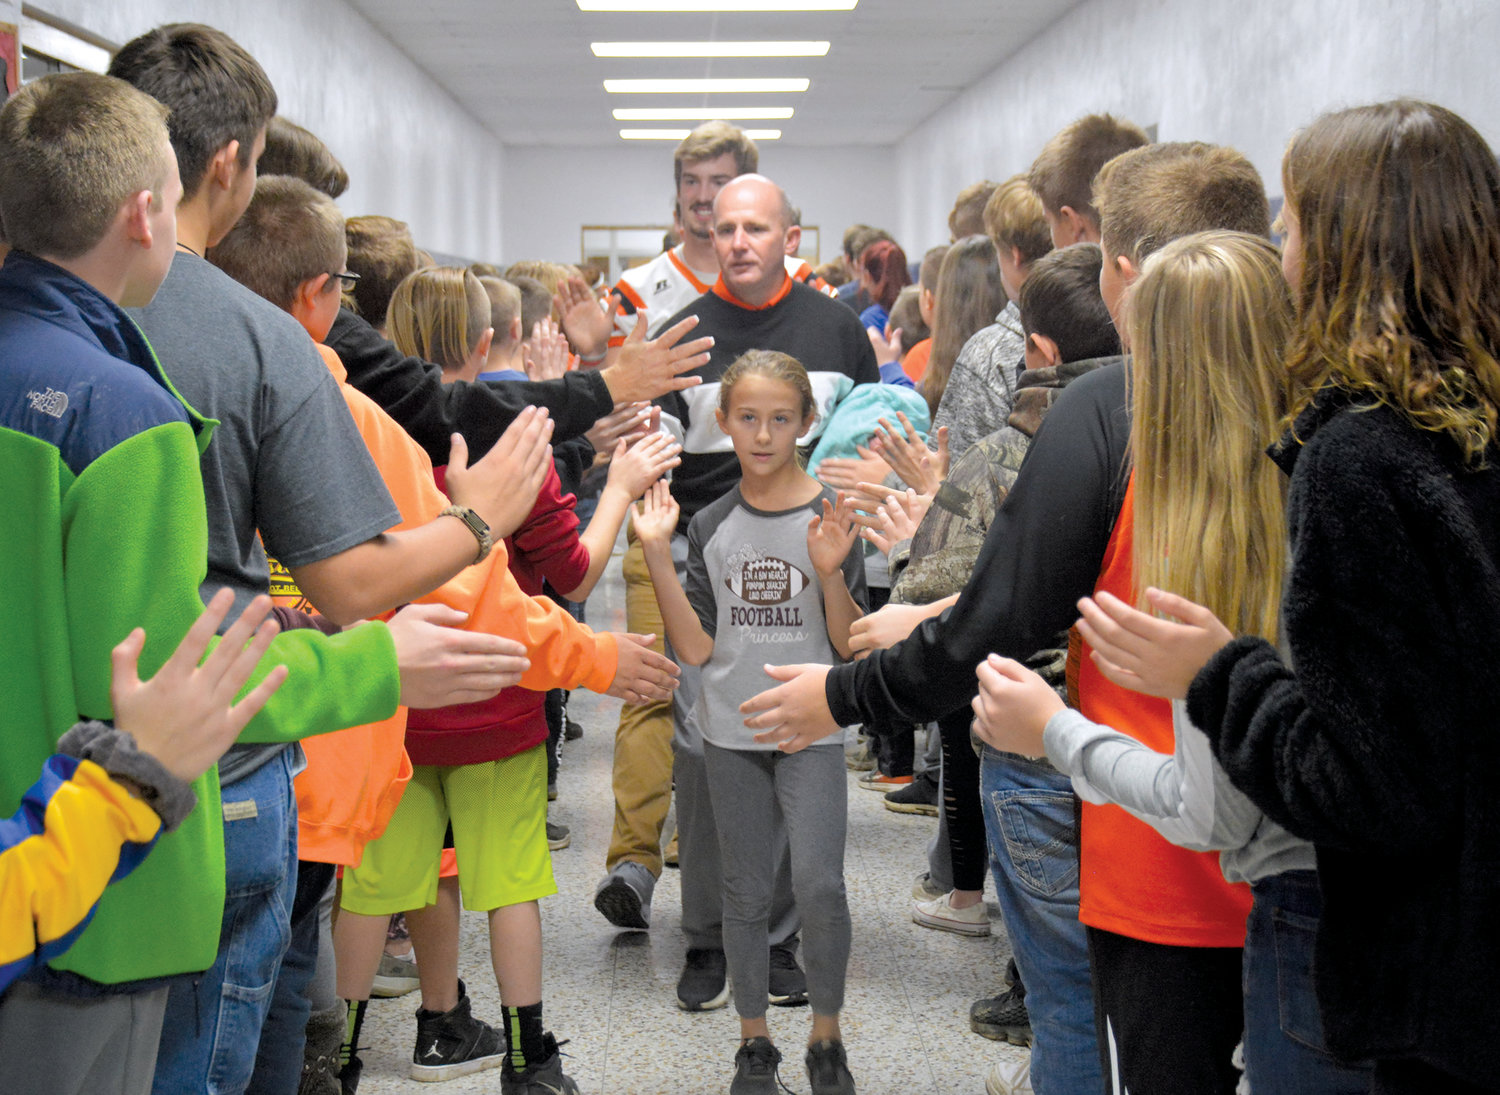 The top Paris Tiger football fan and football princess, Abby Clodfelder, leads her Dad Jeremy Clodfelder and his team through the halls of Crestwood School Friday during the Tiger Team Tour. The team and coaches visited all the Paris schools to the delight of the students who encouraged the team as the travel to Effingham for the second round of the playofffs.